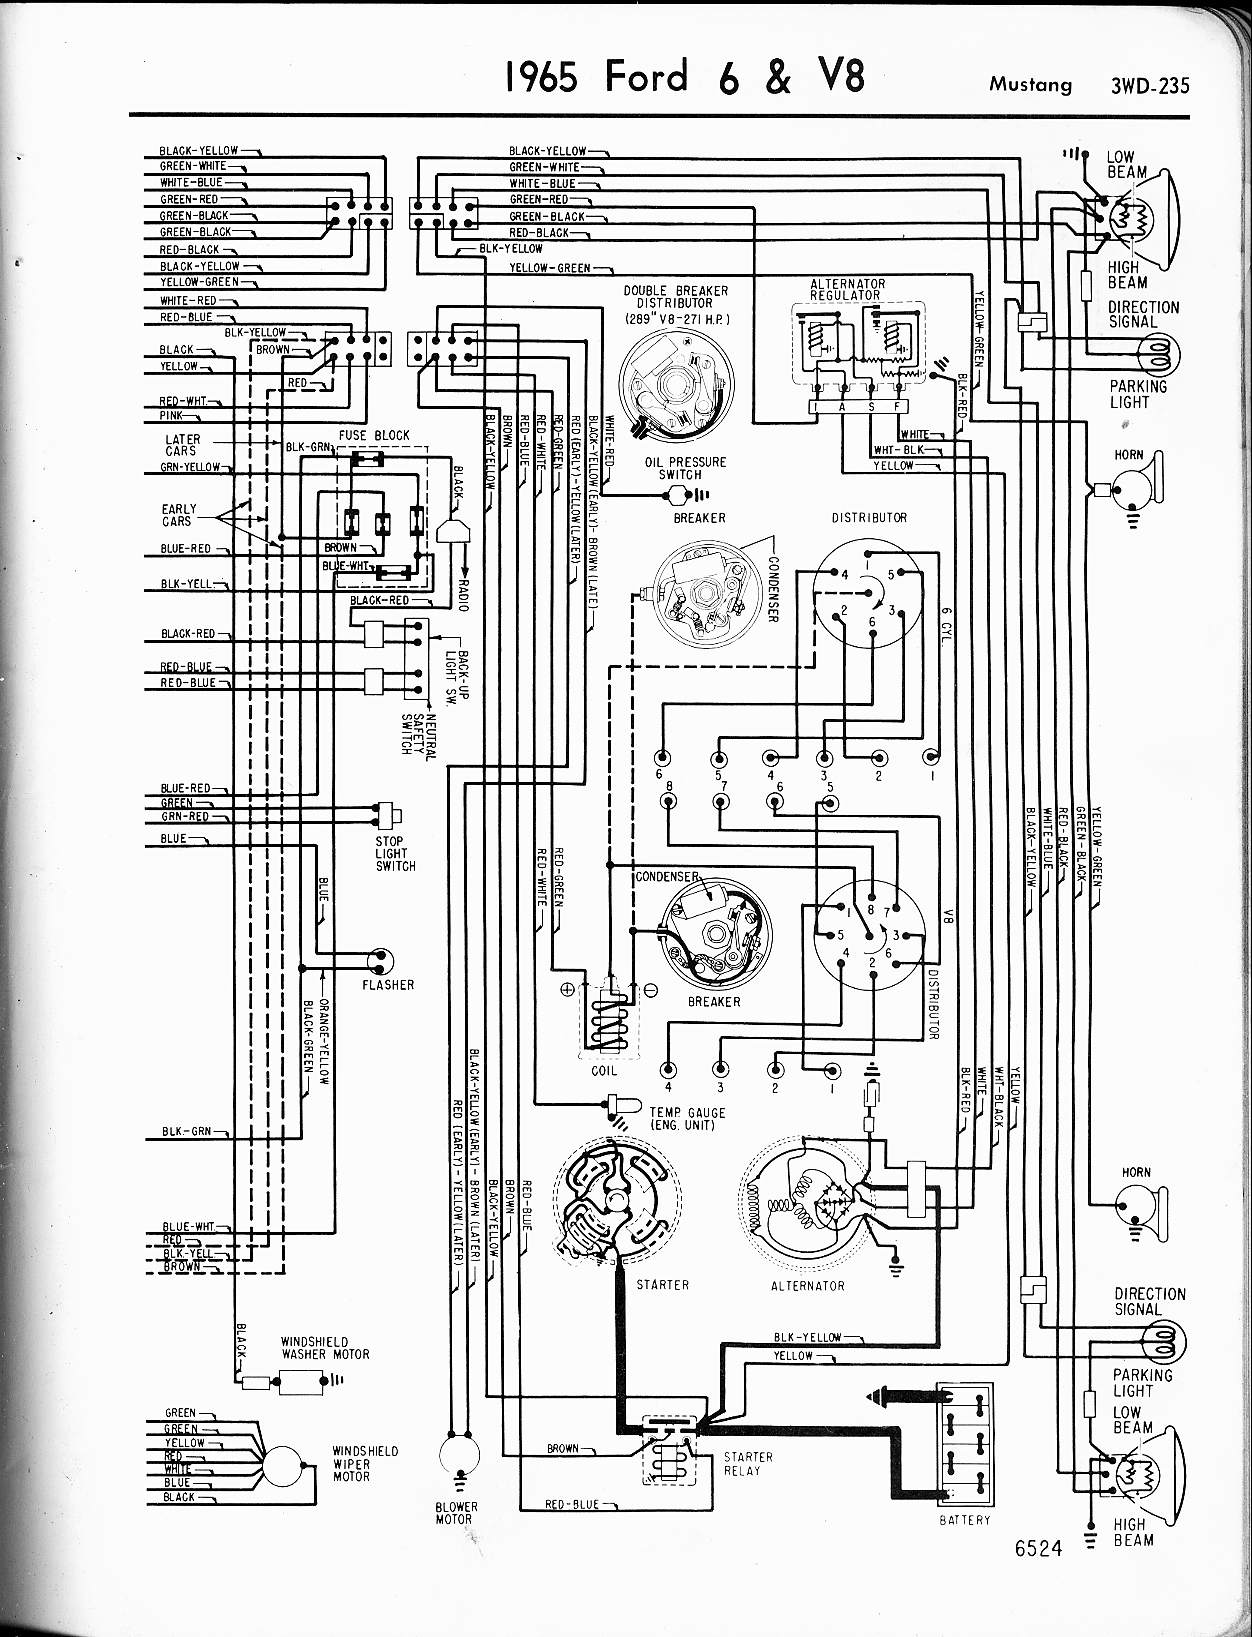 1965 Falcon Wiring Harness - Wiring Diagram Data Oreo on ar diagram, pe diagram, vg diagram, ac diagram, cd diagram, vn diagram, pt diagram, ro diagram, ba diagram,